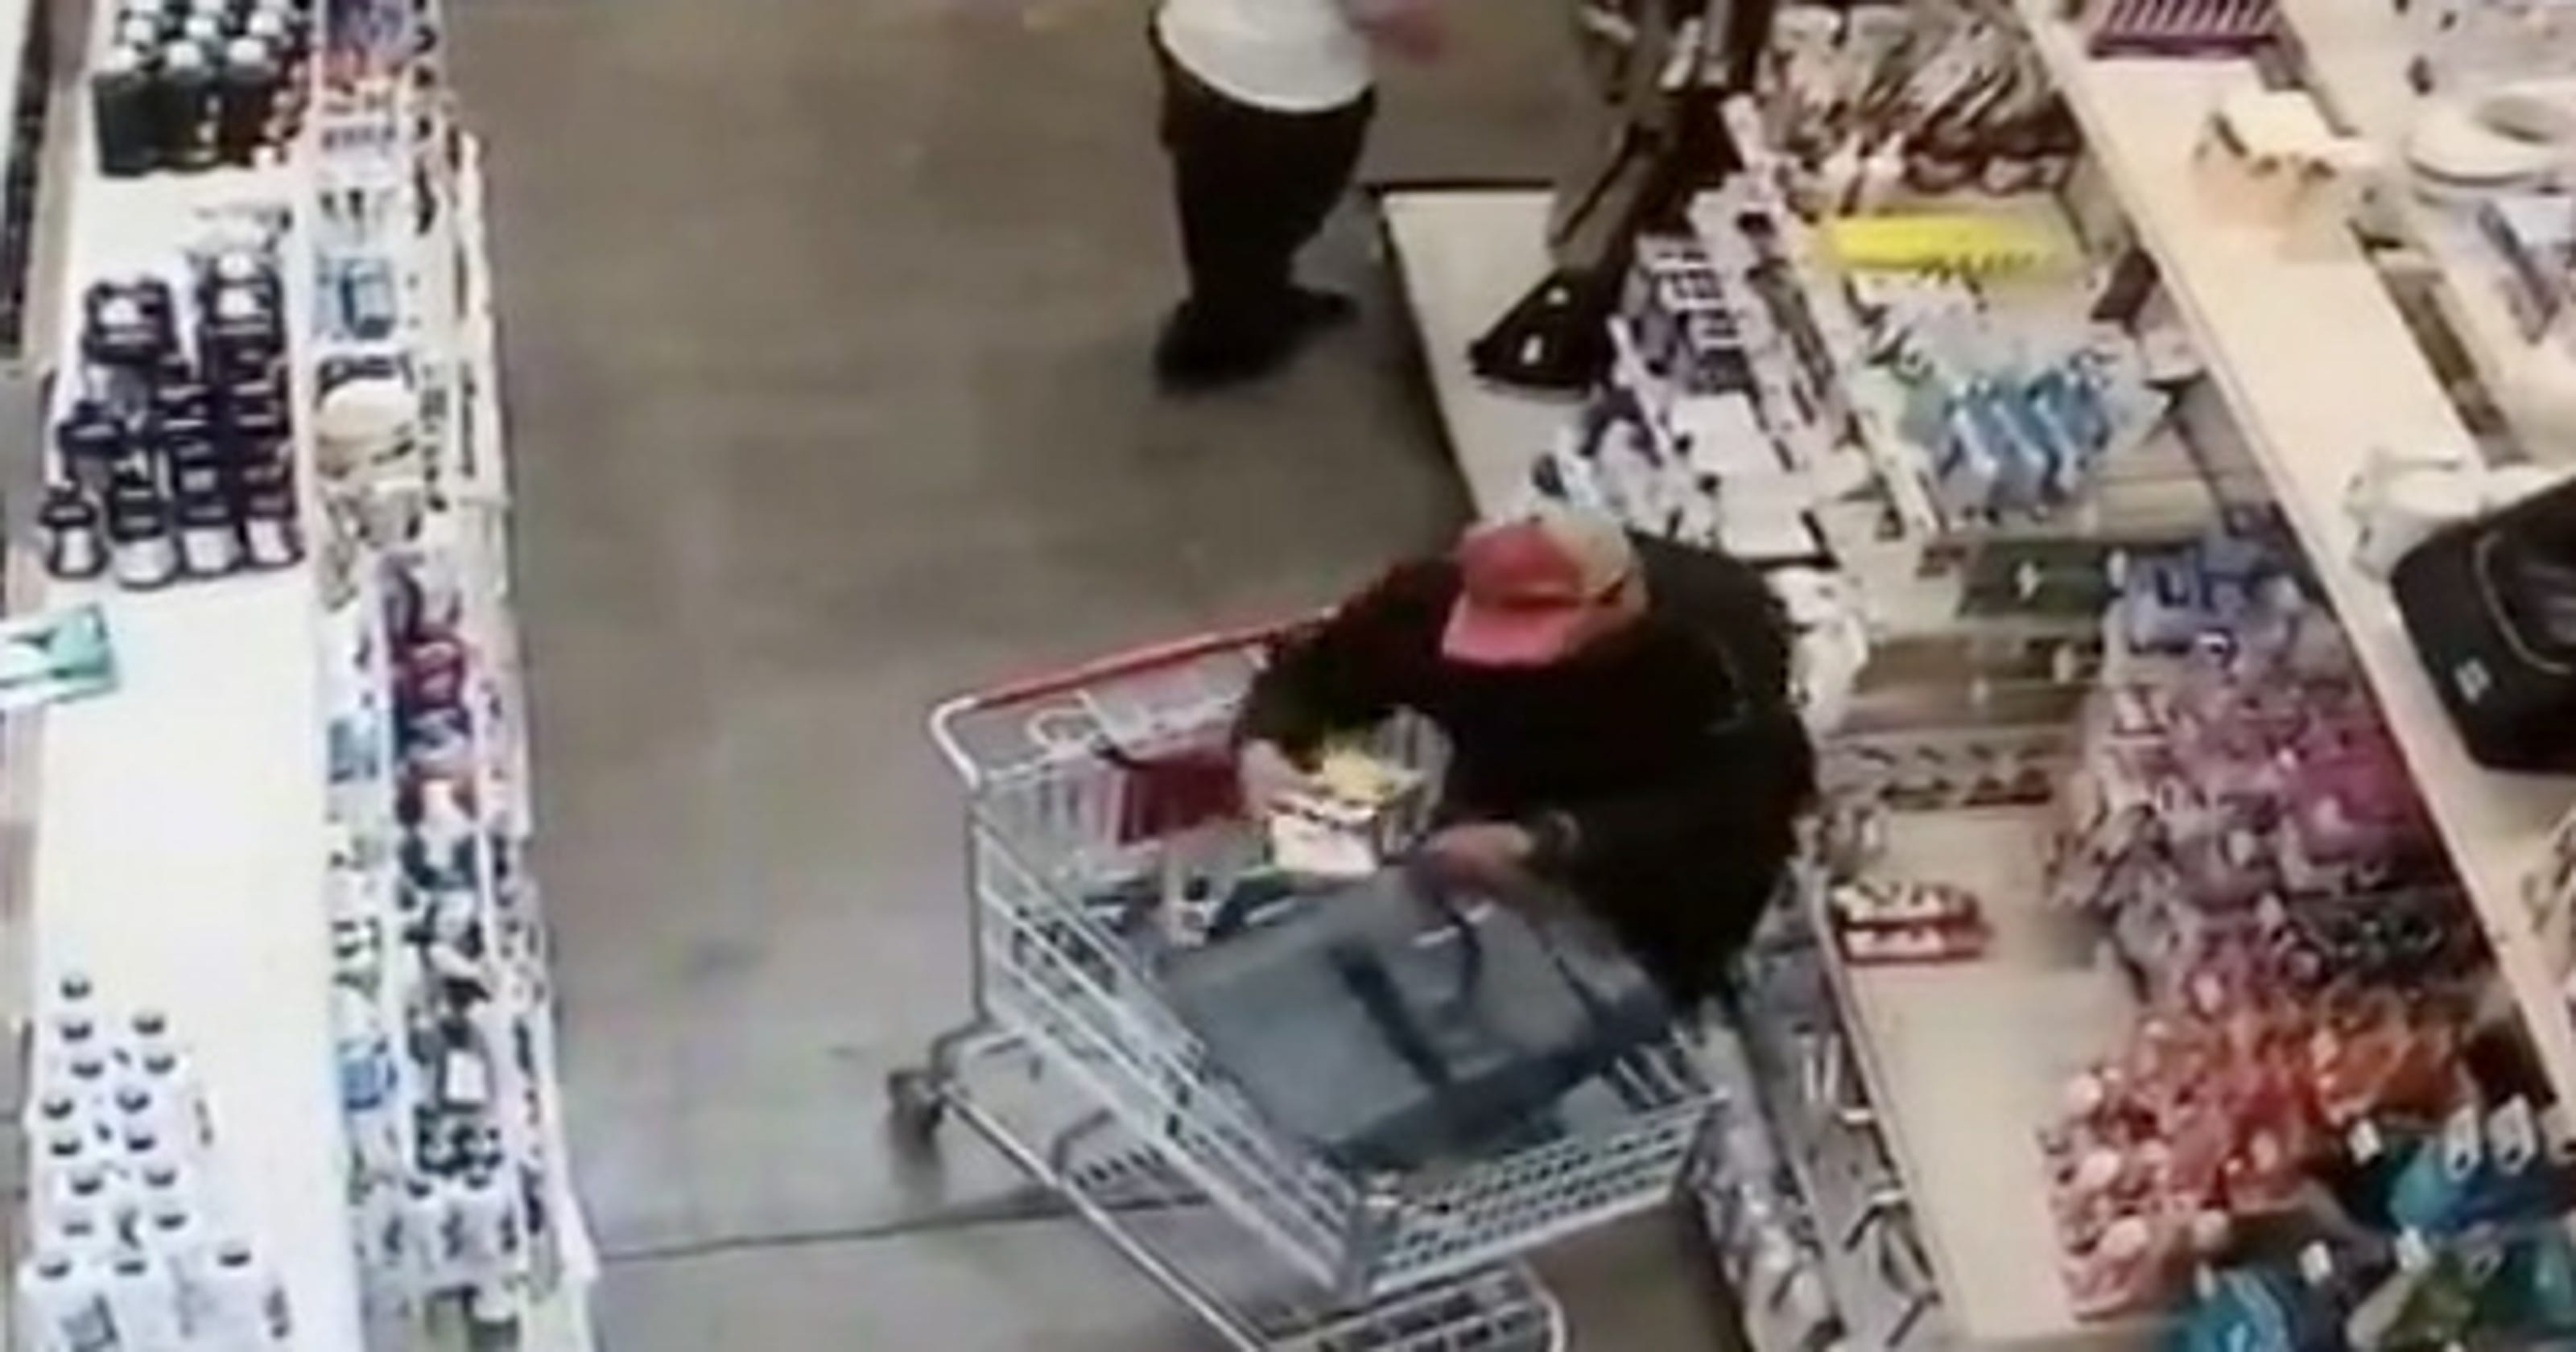 Shoplifting caught on camera in Simi Valley